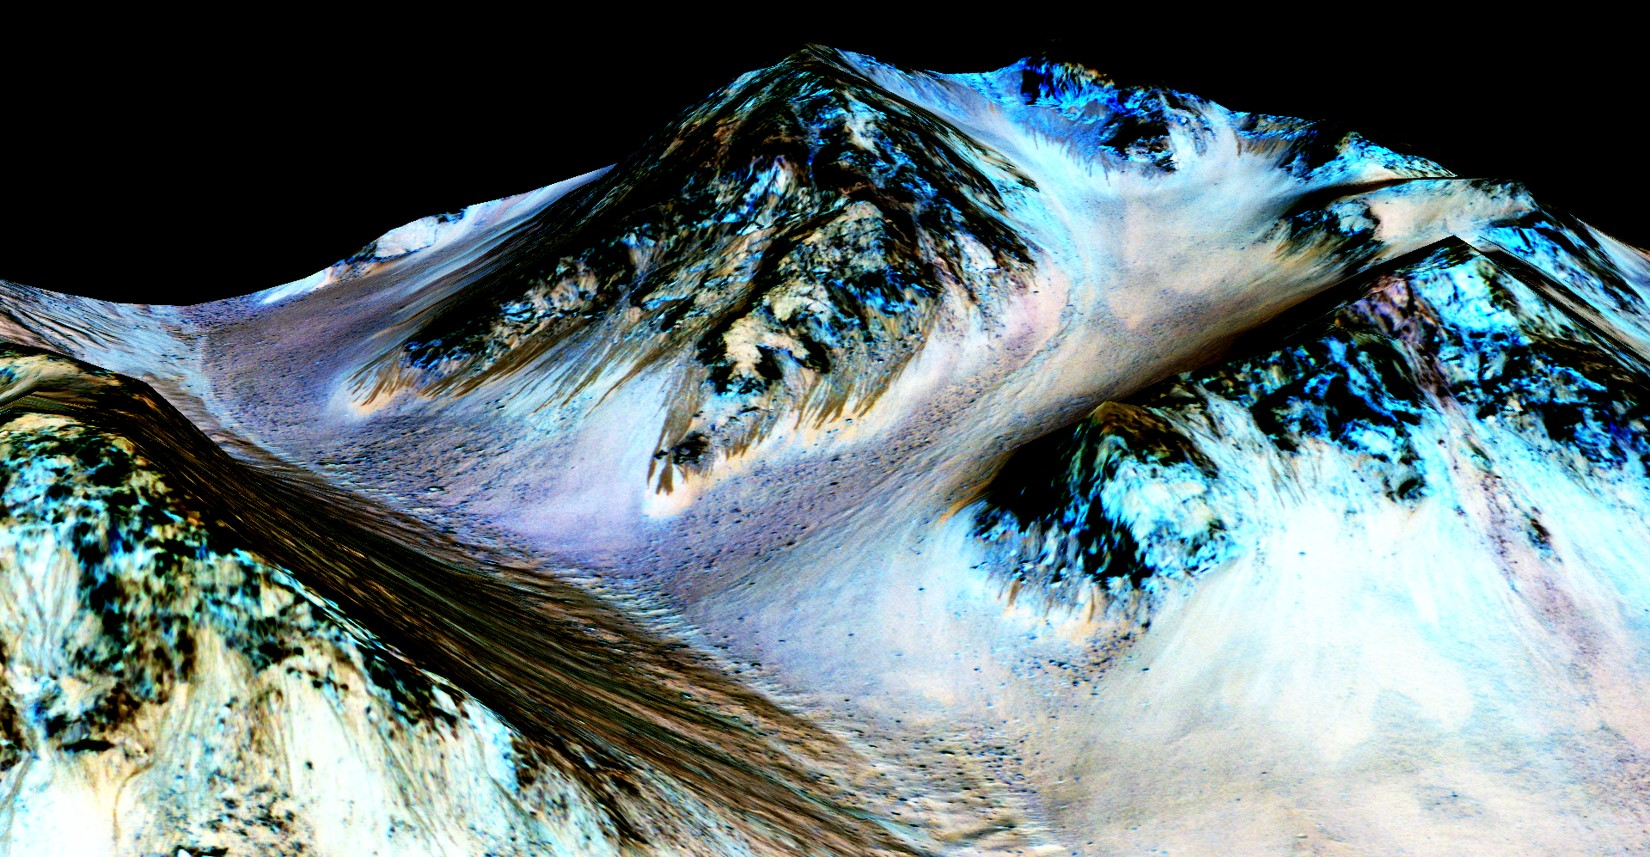 Top 5 NASA Discoveries In Hindi, Image result for 4. Flowing Water On Mars